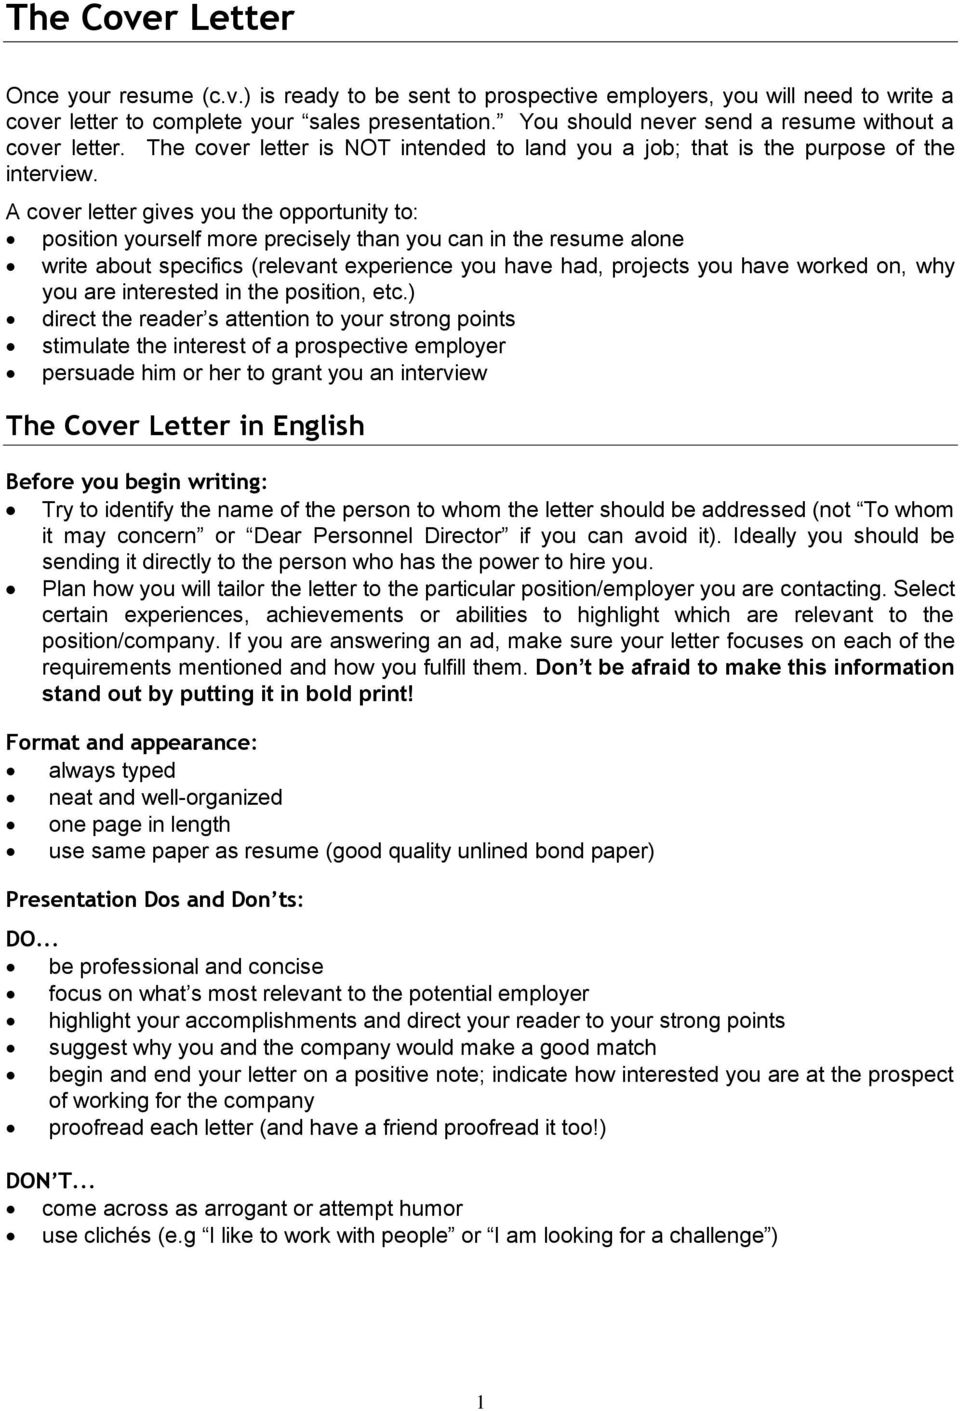 A cover letter gives you the opportunity to: position yourself more precisely than you can in the resume alone write about specifics (relevant experience you have had, projects you have worked on,